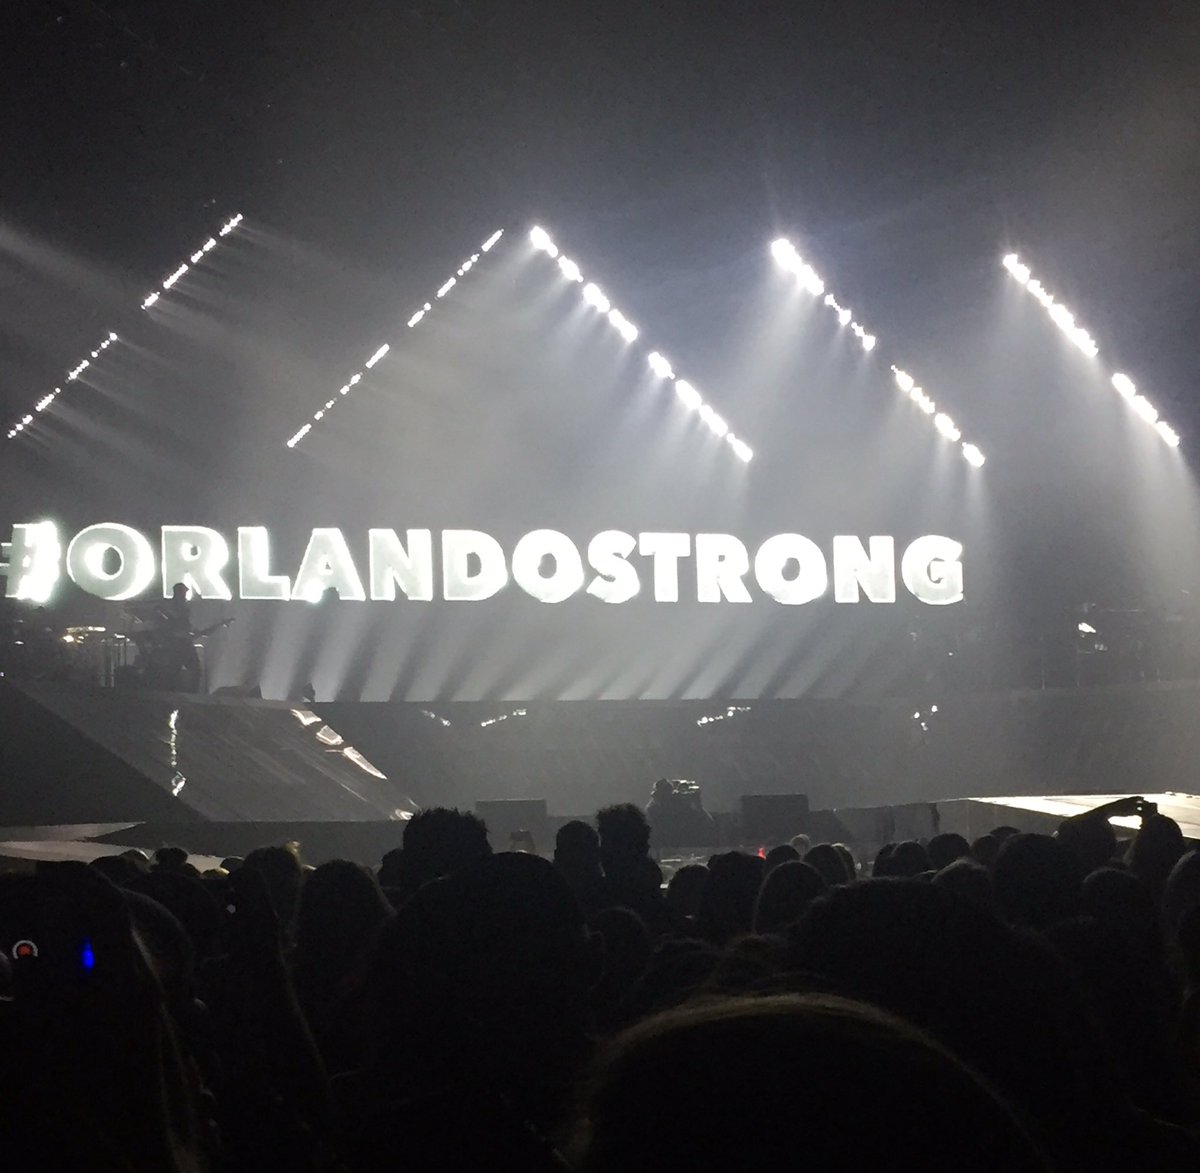 So this appeared on stage @justinbieber tonight @AmwayCenter. #nicemove @WESH https://t.co/PNqL6HVzDD